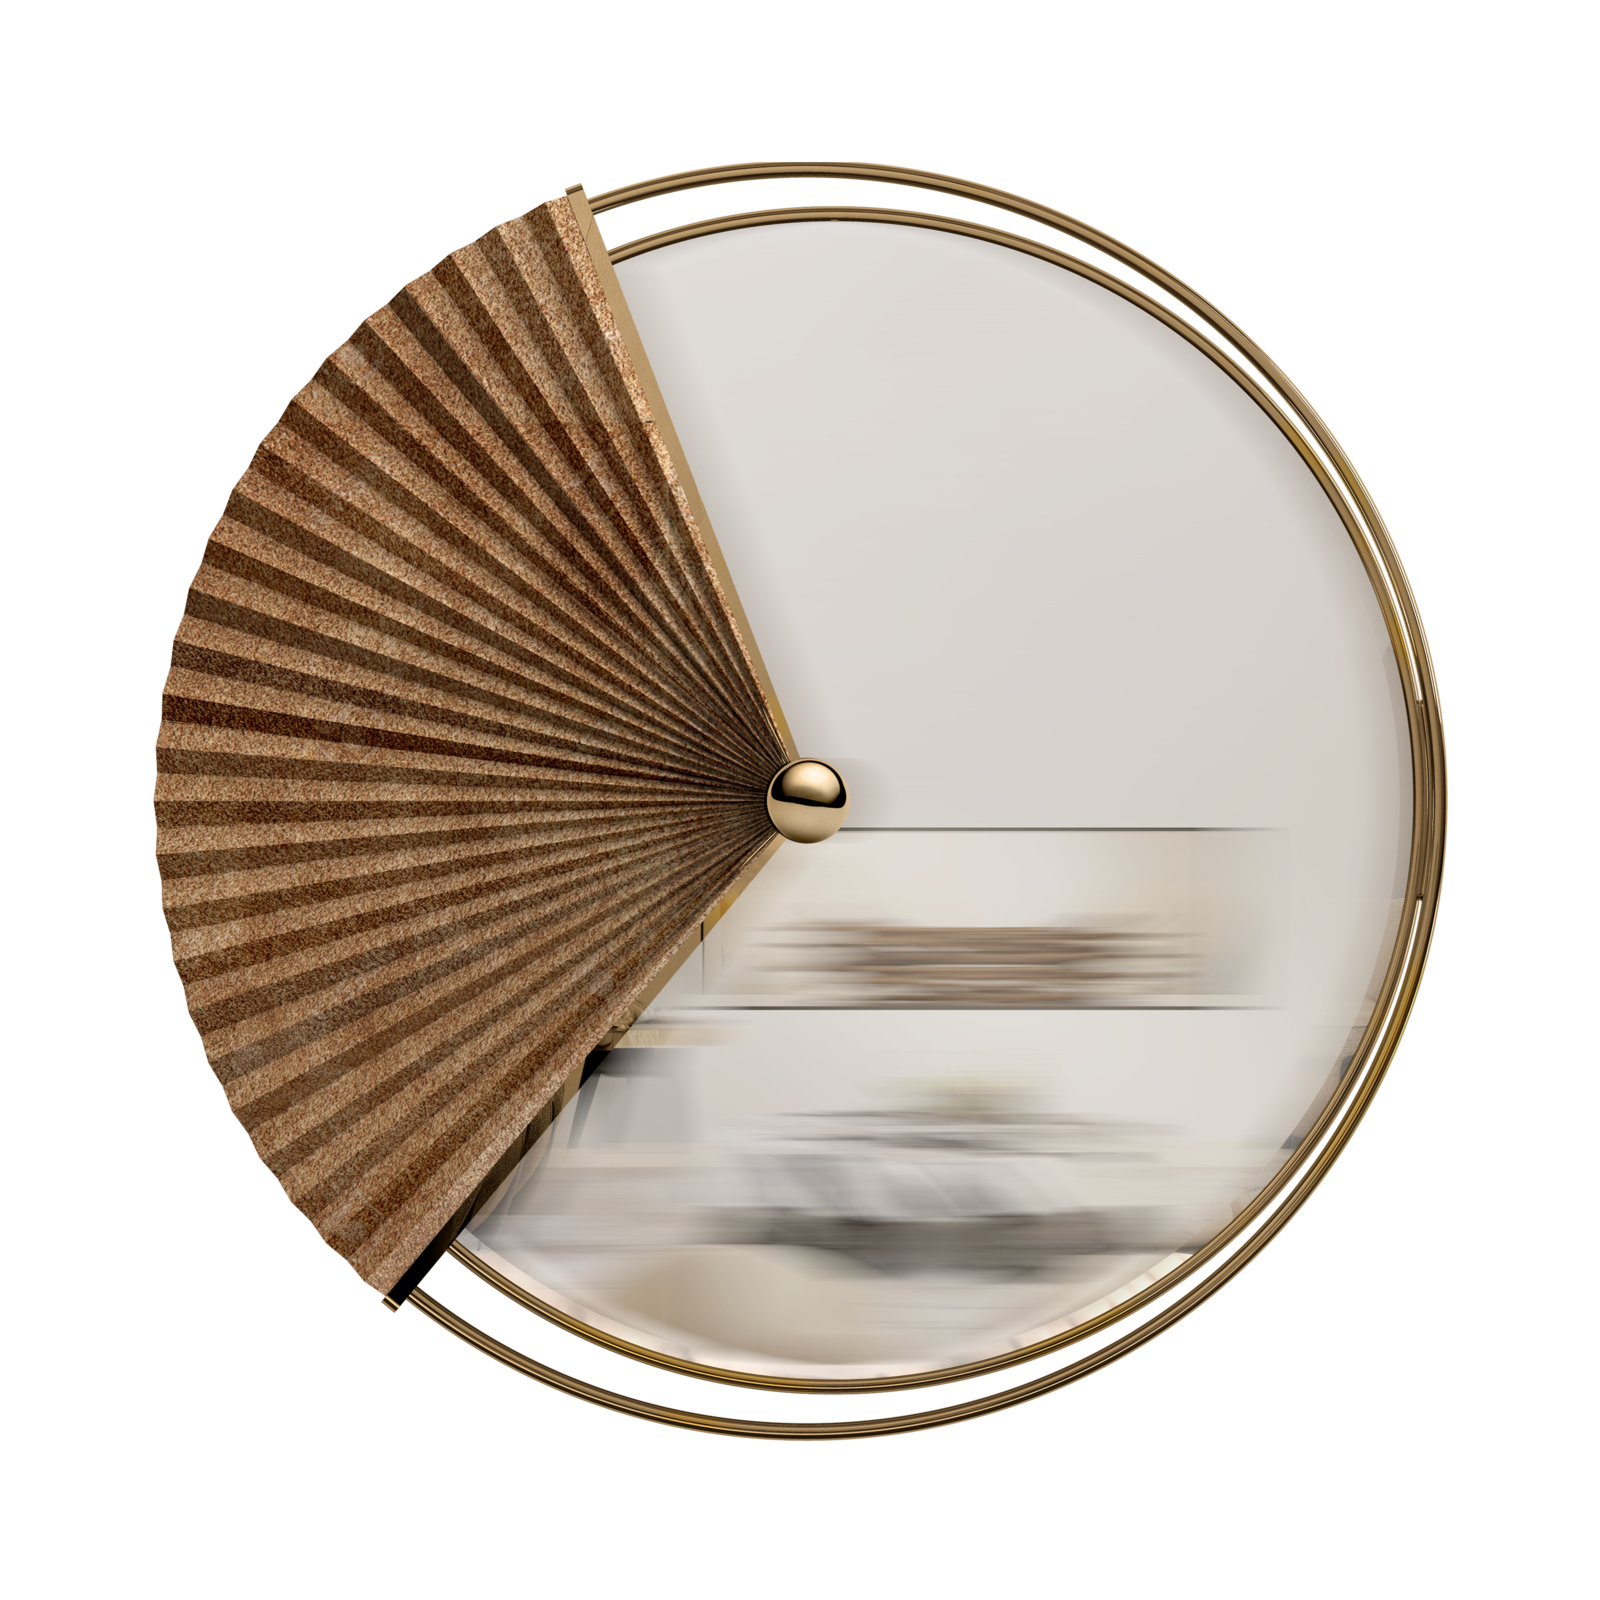 Flack wall mirror. A classic lamp designed to impress with its classic mood.